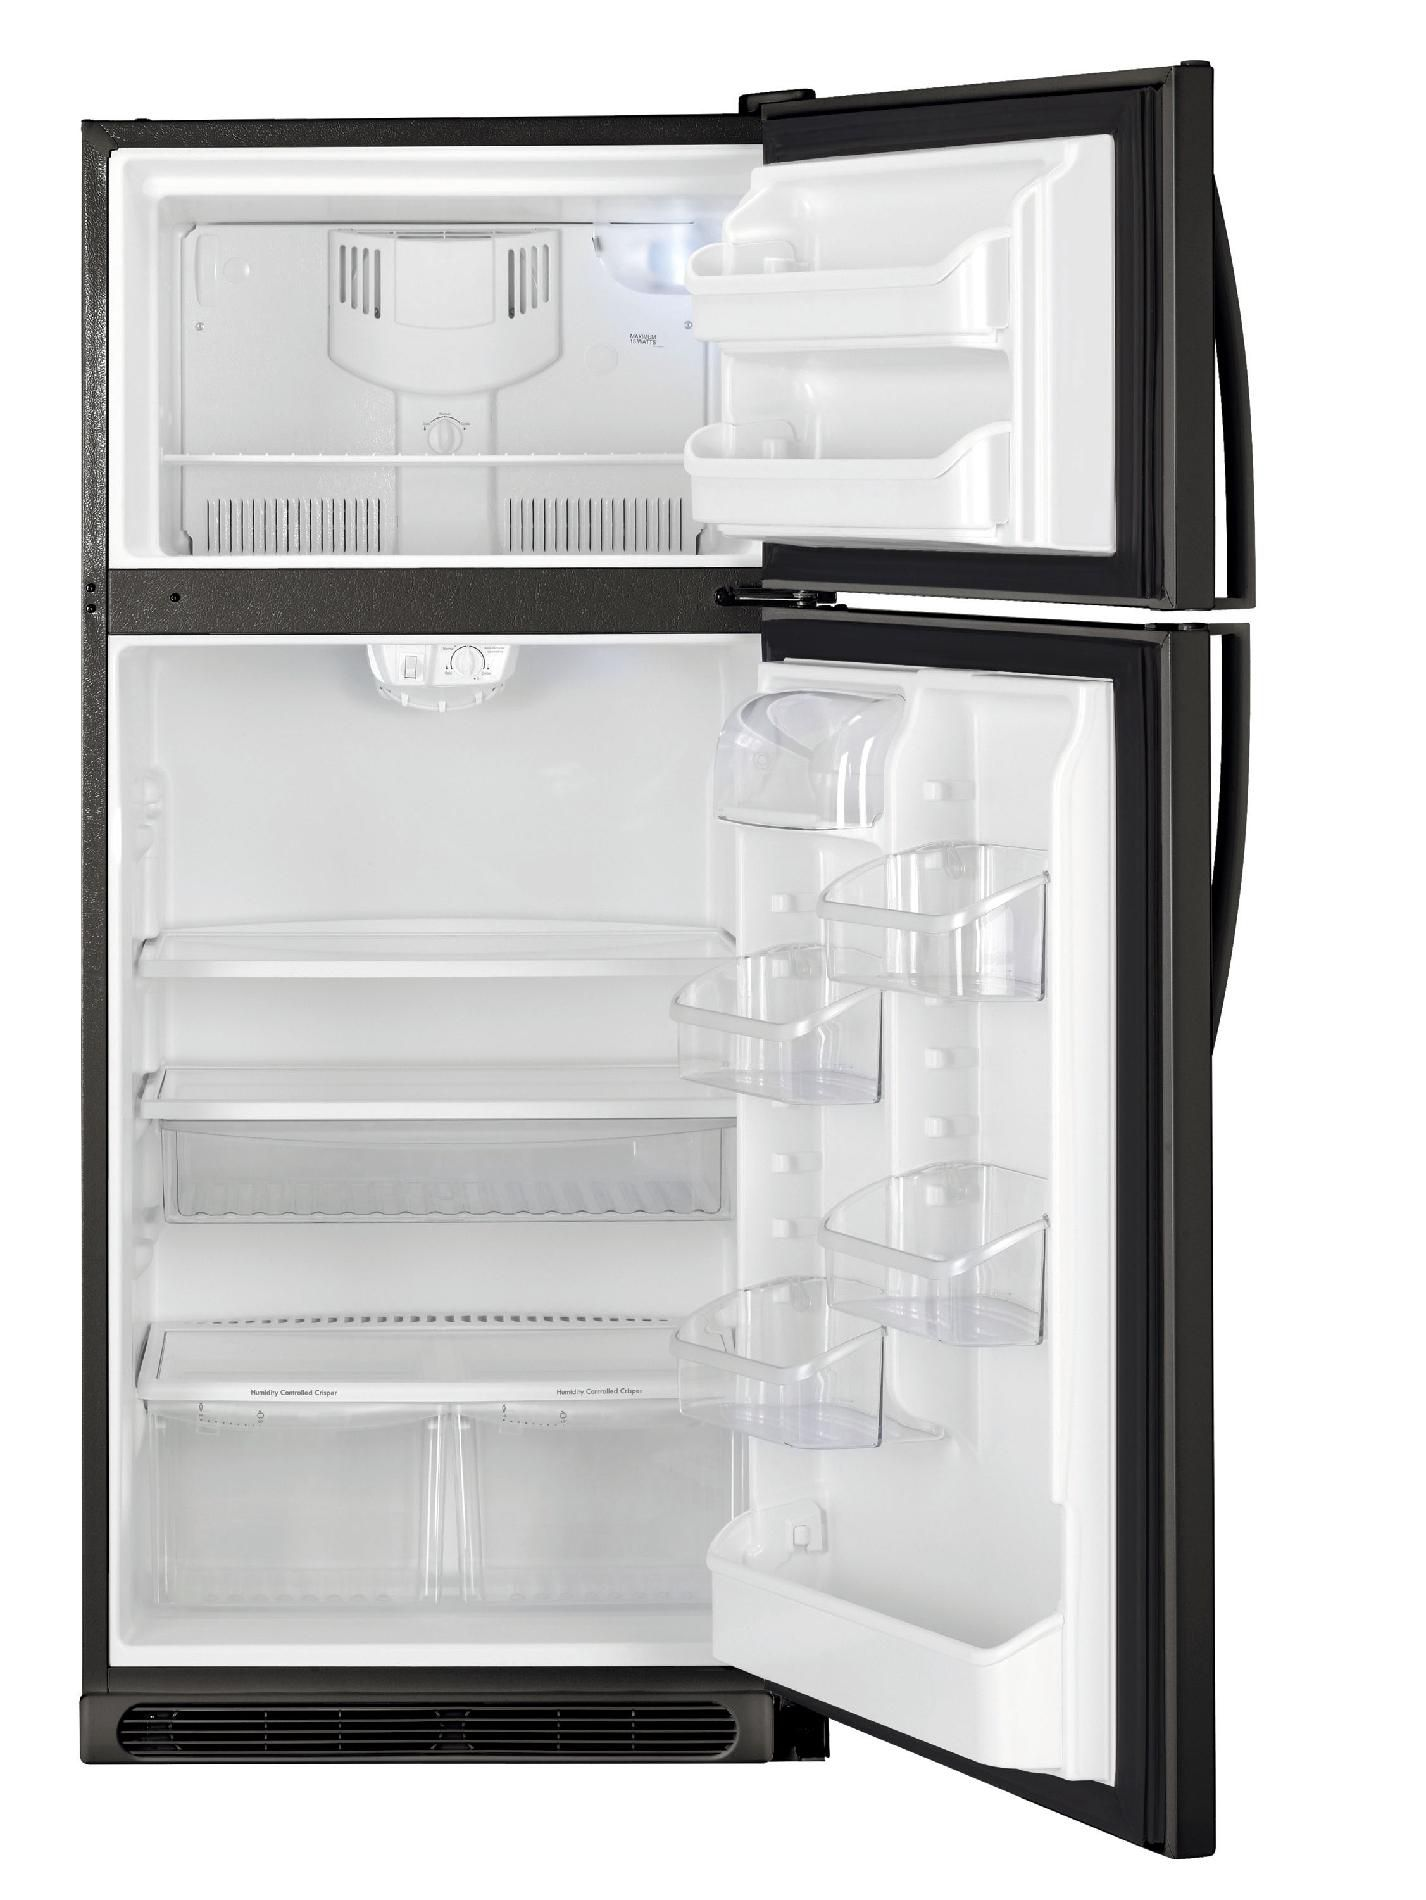 Kenmore 18 cu. ft. Top Freezer Refrigerator - Black